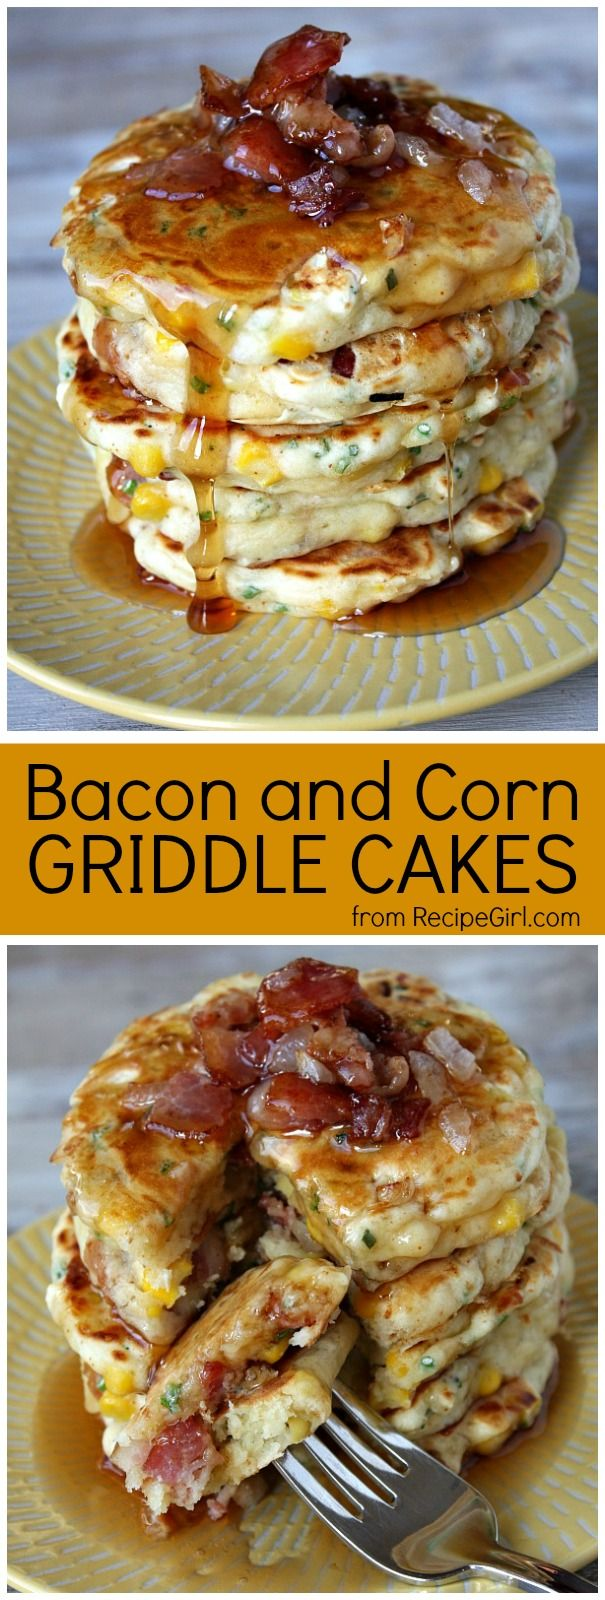 Bacon and Corn Griddle Cakes - a savory pancake recipe to serve for breakfast... or as breakfast for dinner!  Recipe from RecipeGirl.com